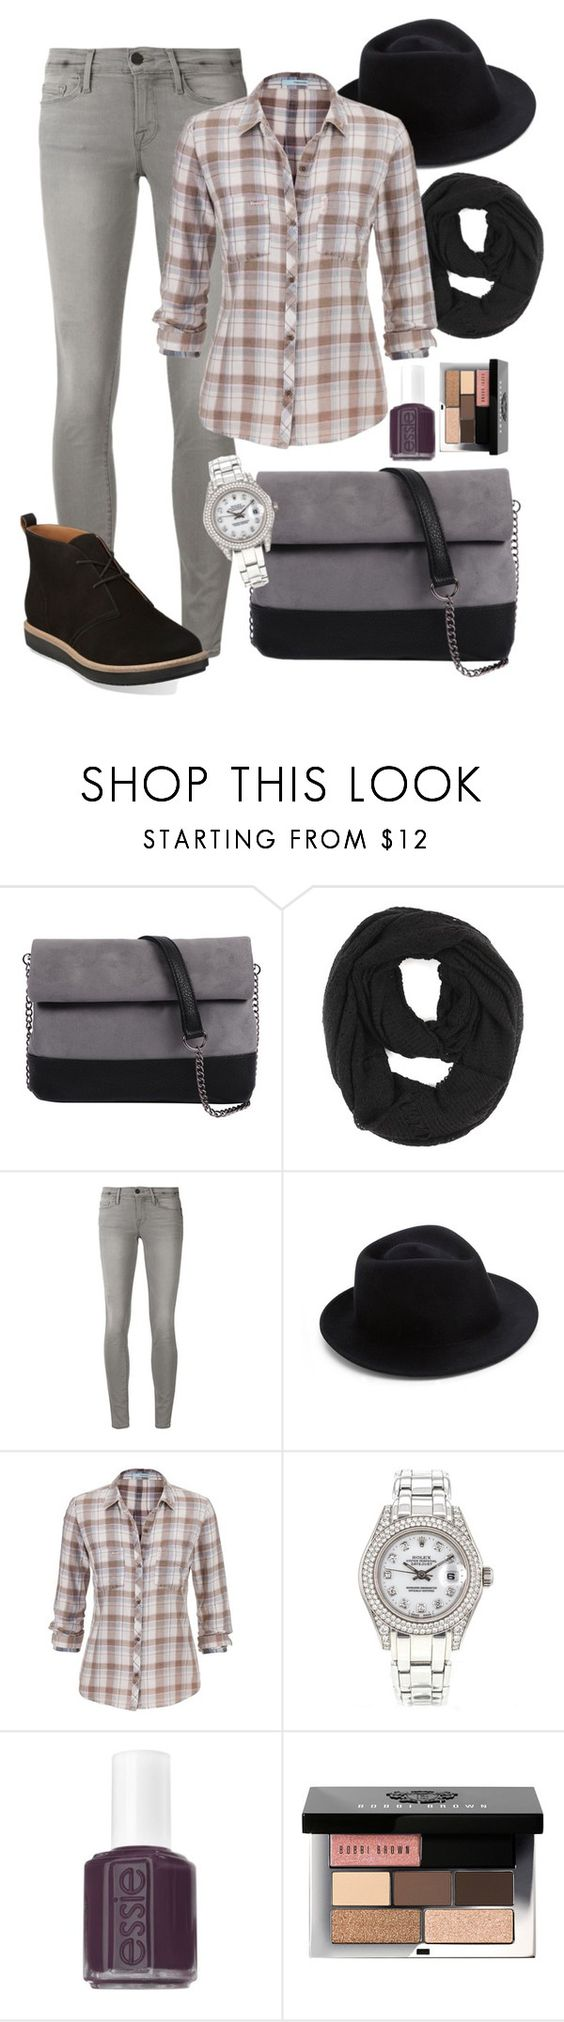 """""""Untitled #231"""" by averydane ❤ liked on Polyvore featuring 7 Chi, Paula Bianco, Frame Denim, Eugenia Kim, maurices, Rolex, Essie, Bobbi Brown Cosmetics and Clarks"""